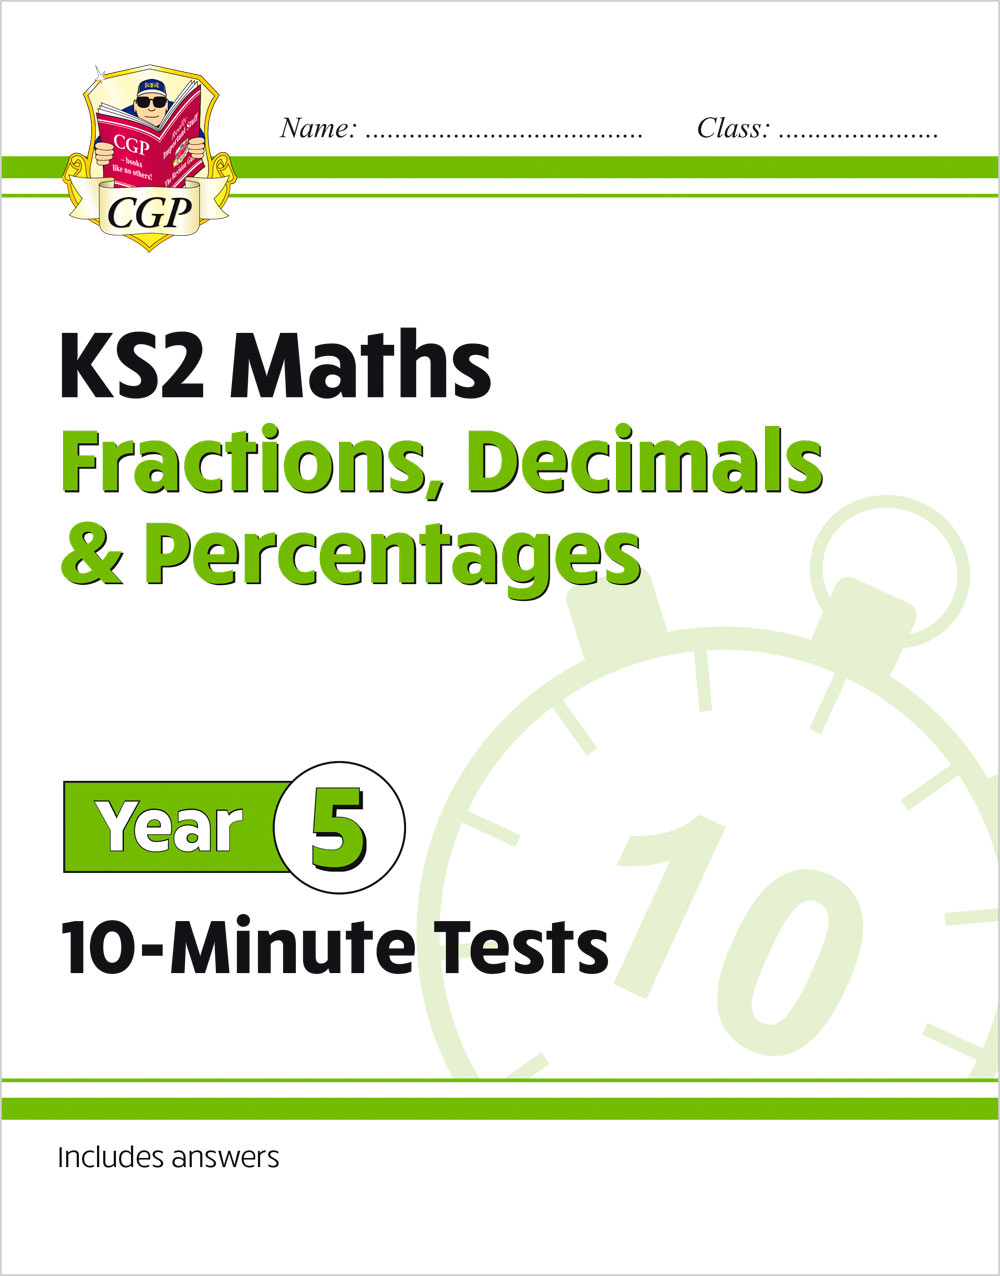 M5FDPXP21 - New KS2 Maths 10-Minute Tests: Fractions, Decimals & Percentages - Year 5